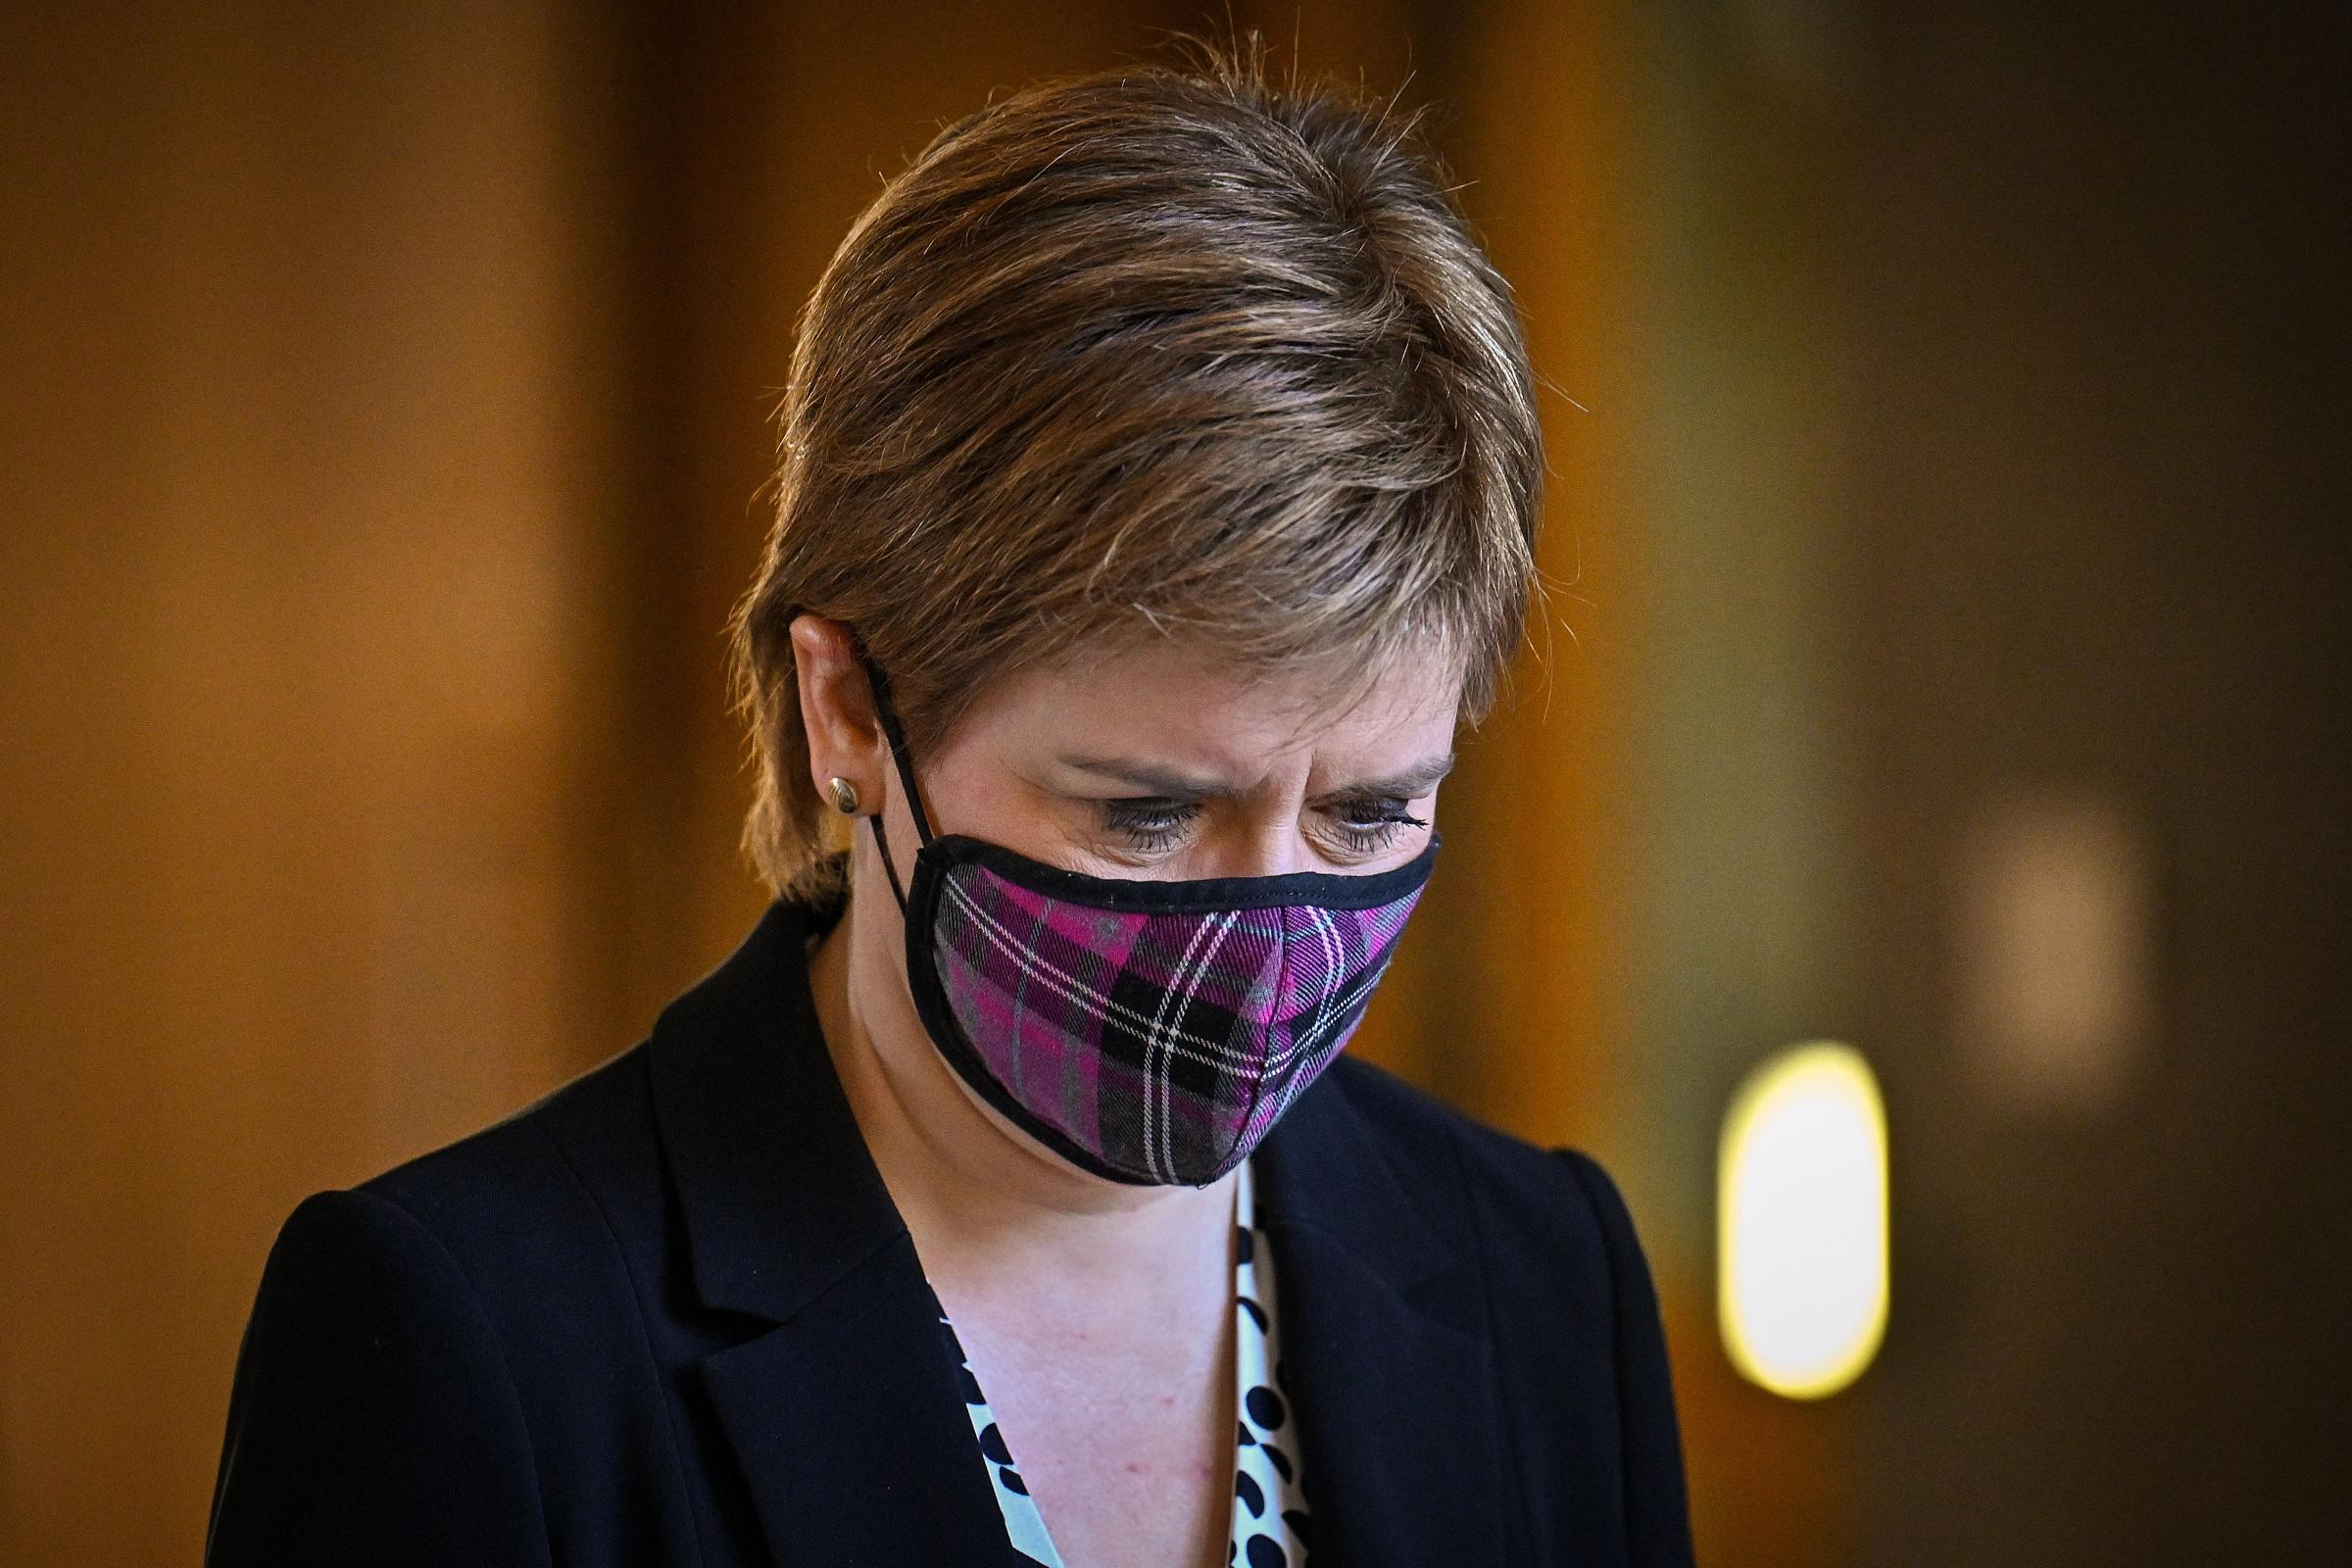 Covid: What did Nicola Sturgeon say in her briefing on Thursday?